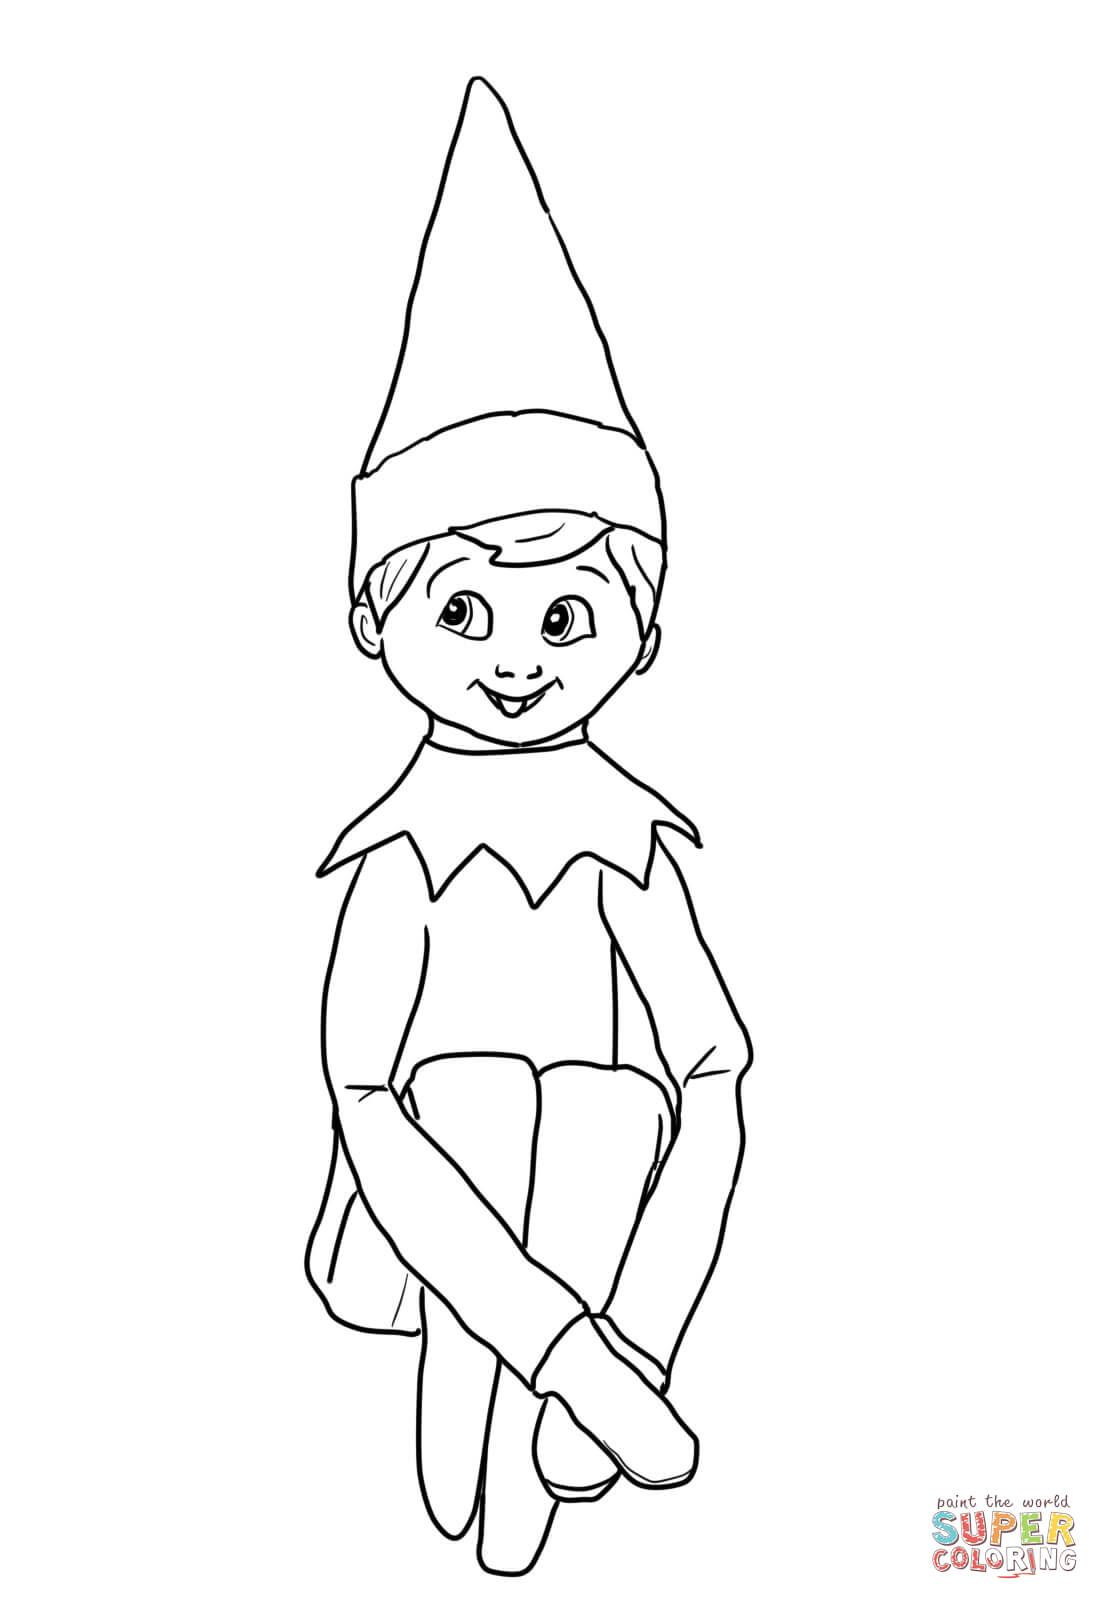 Santa S Stuck Coloring Page With These Free Printable Elves Pages Also Christmas Trees